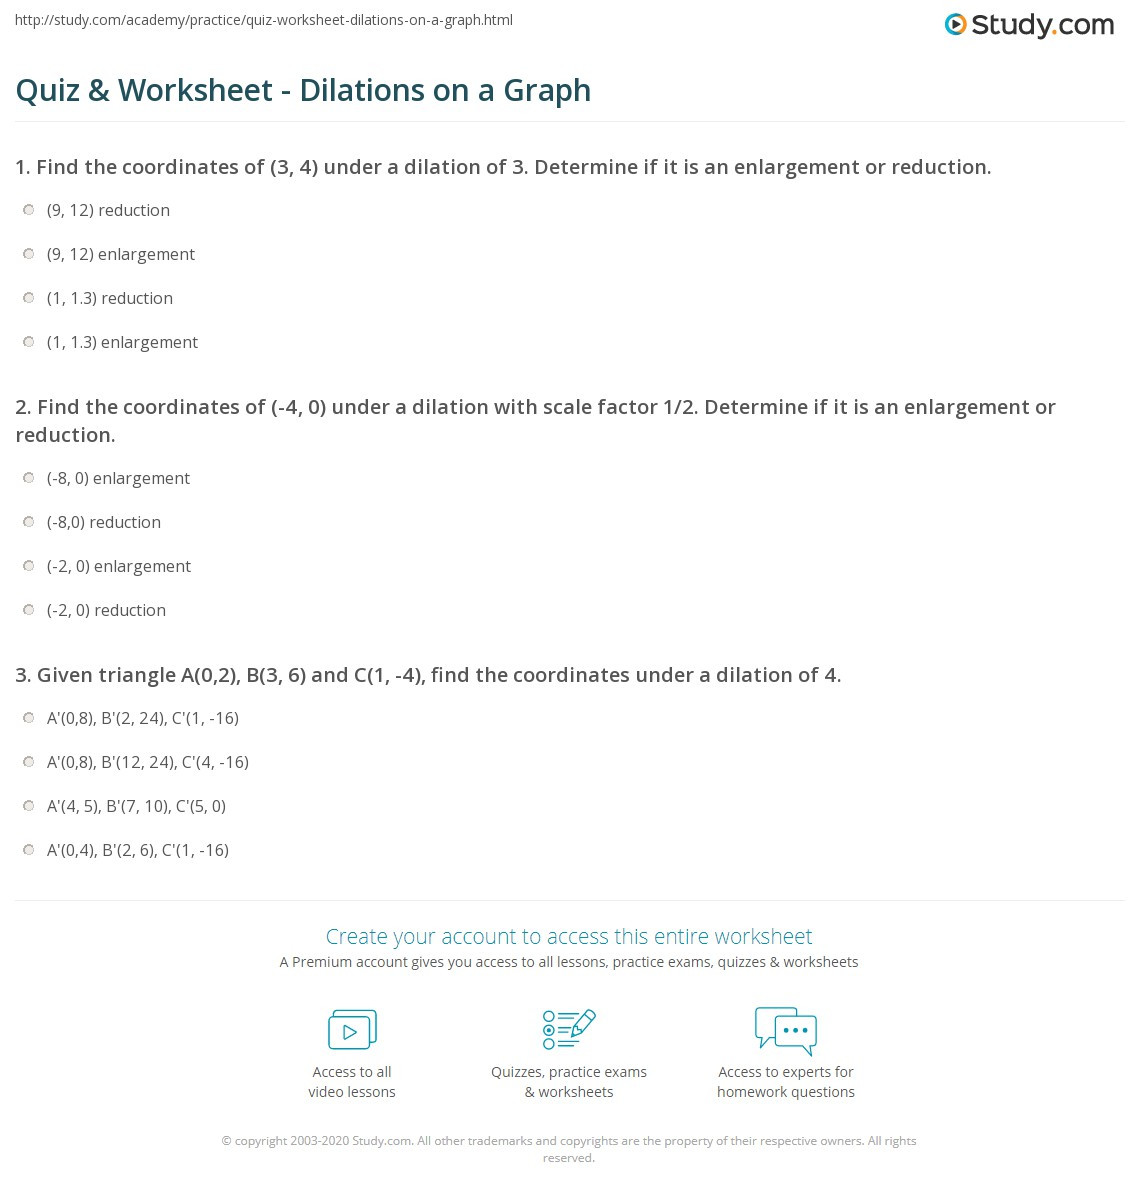 Dilations and Scale Factor Worksheet Quiz & Worksheet Dilations On A Graph